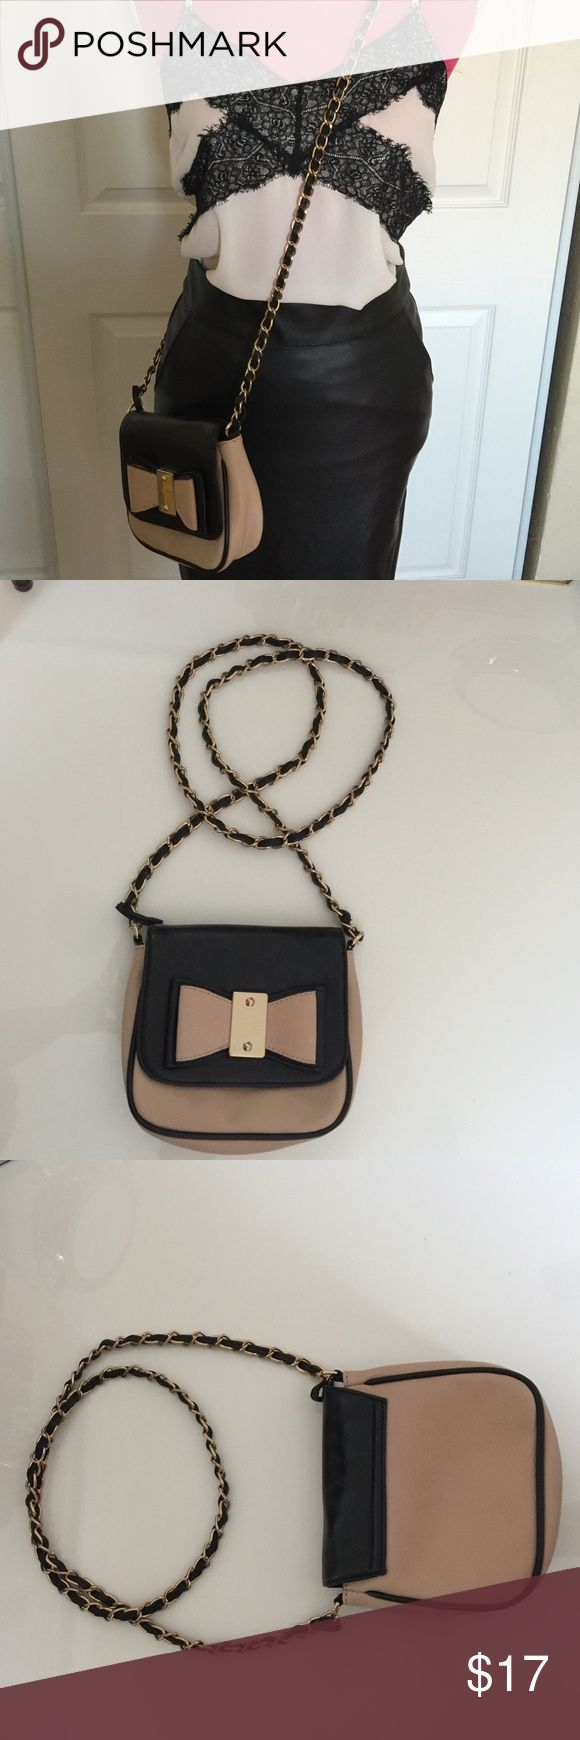 ALDO Mini Crossbody Bag Blush pink/ Black with Gold chain. Like new used 1-2 times. Inside is clean. ALDO Bags Crossbody Bags